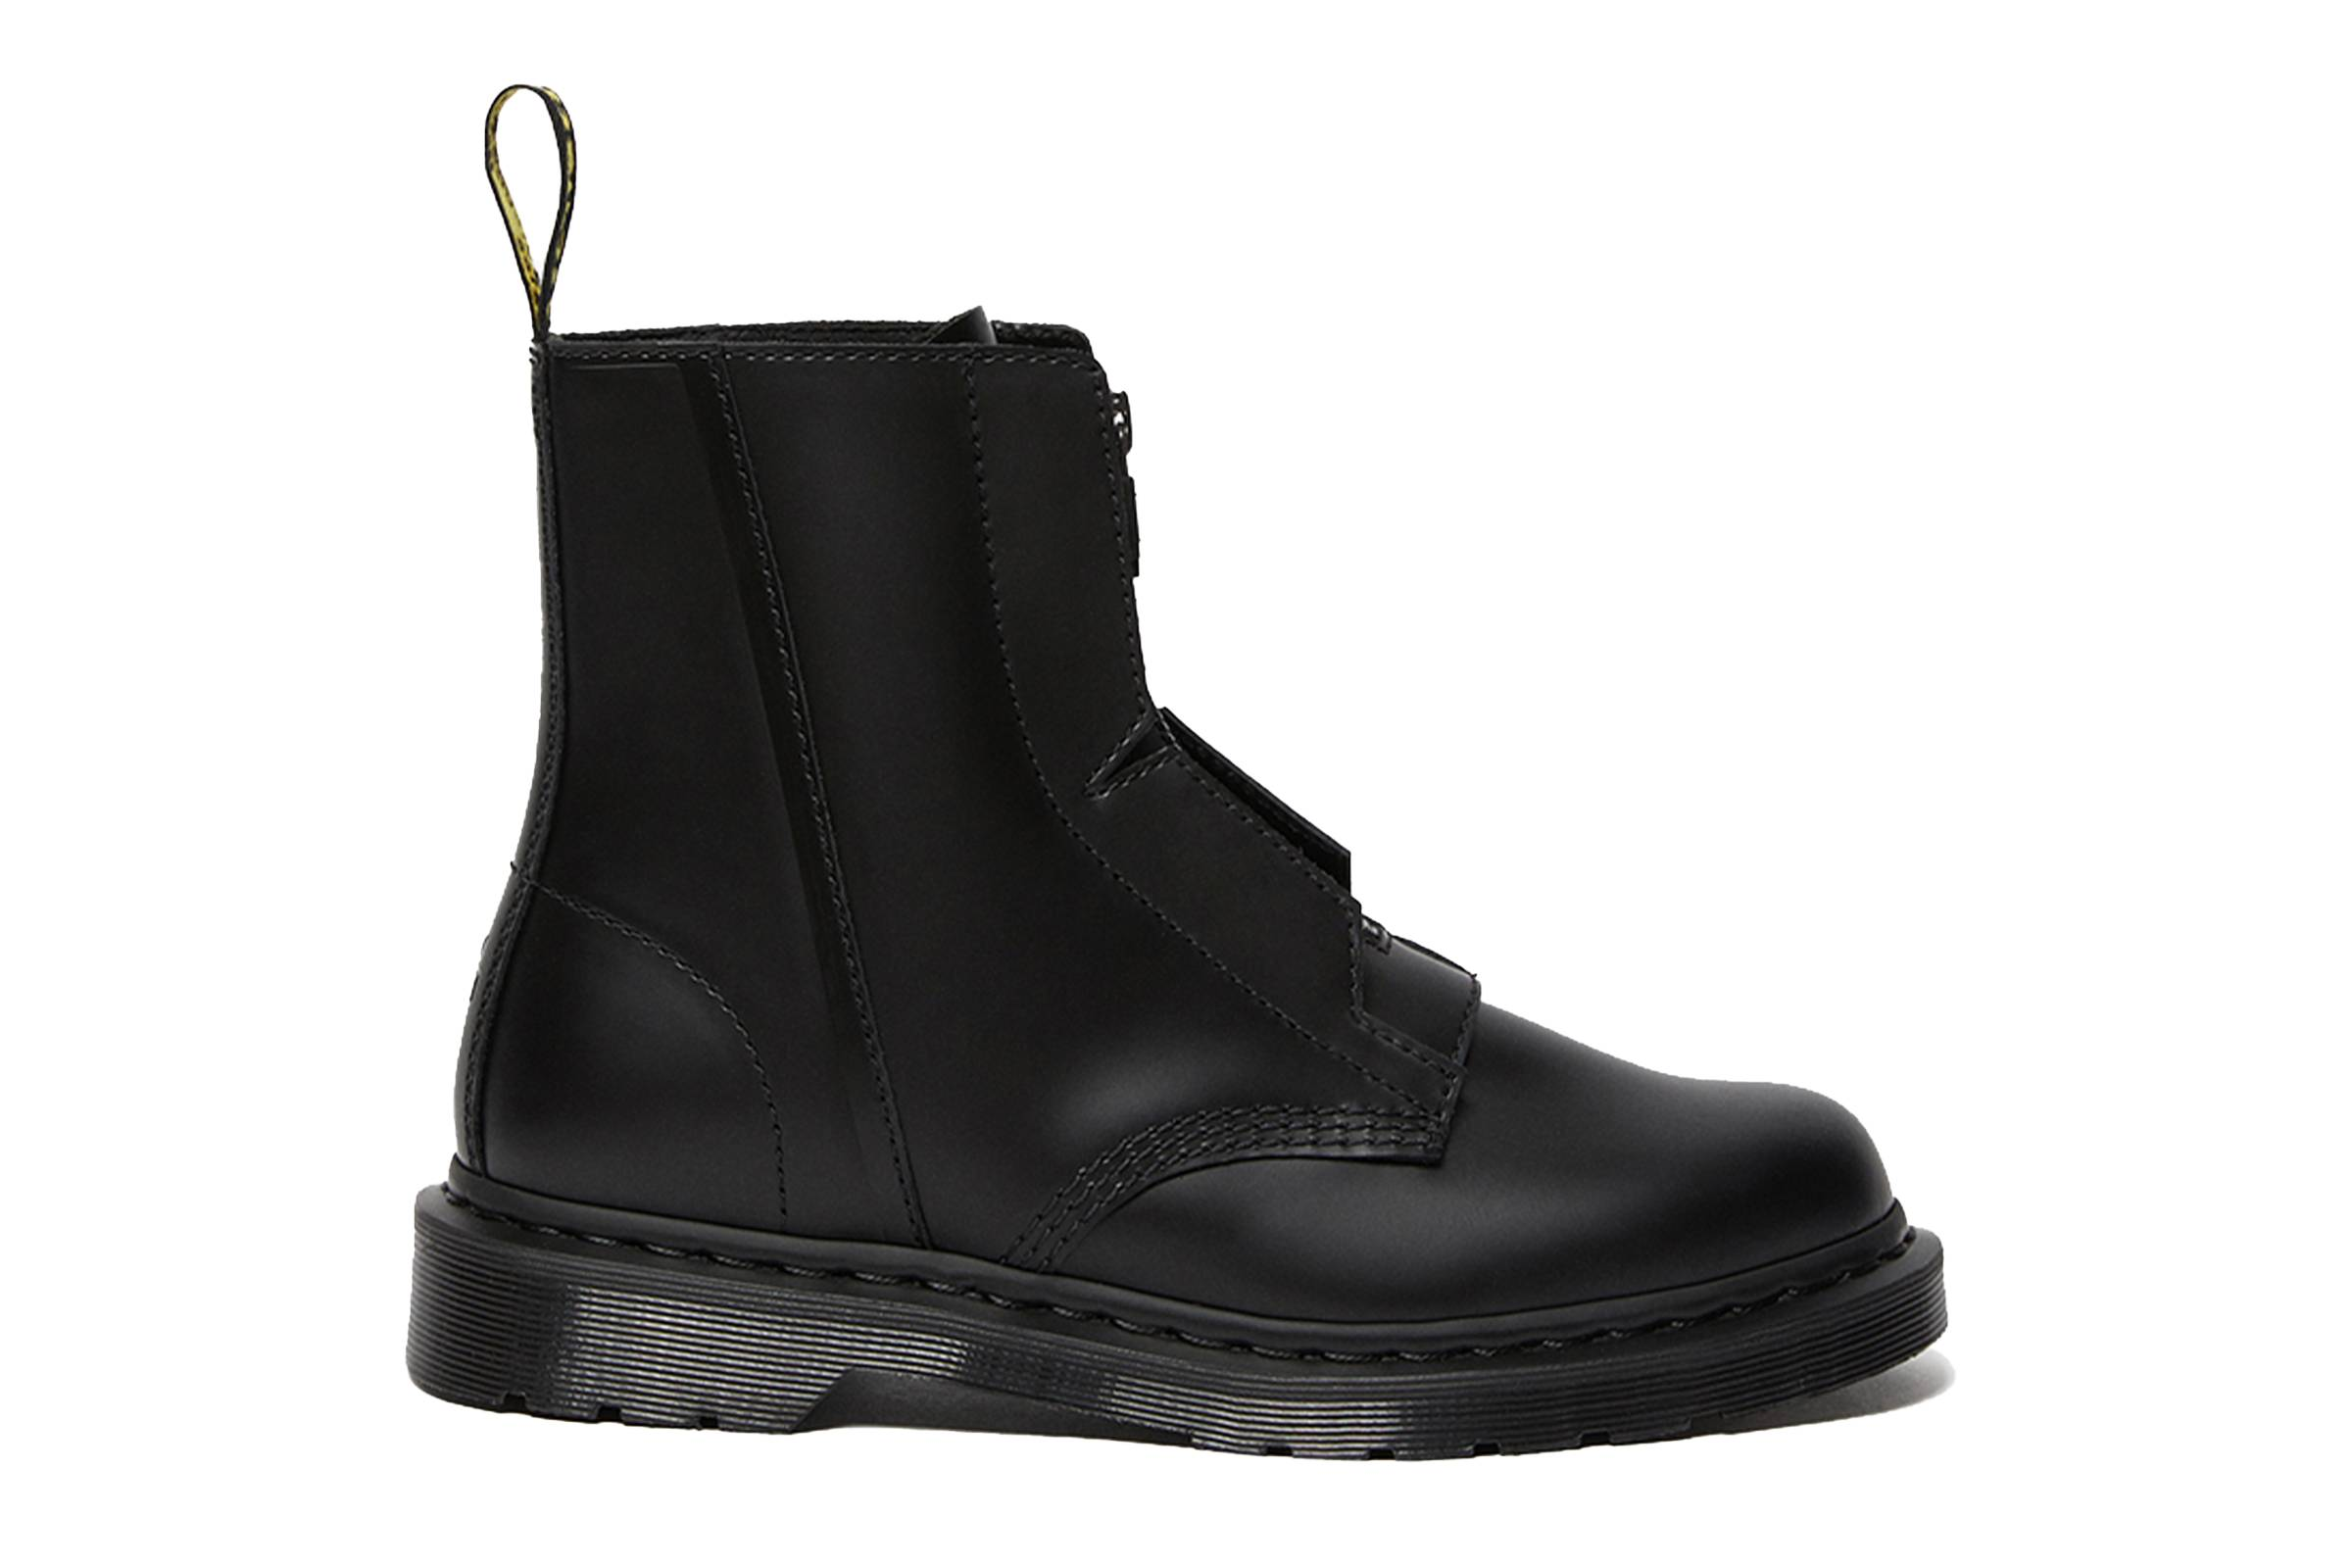 A-Cold-Wall* x Dr. Martens 1460 Boots